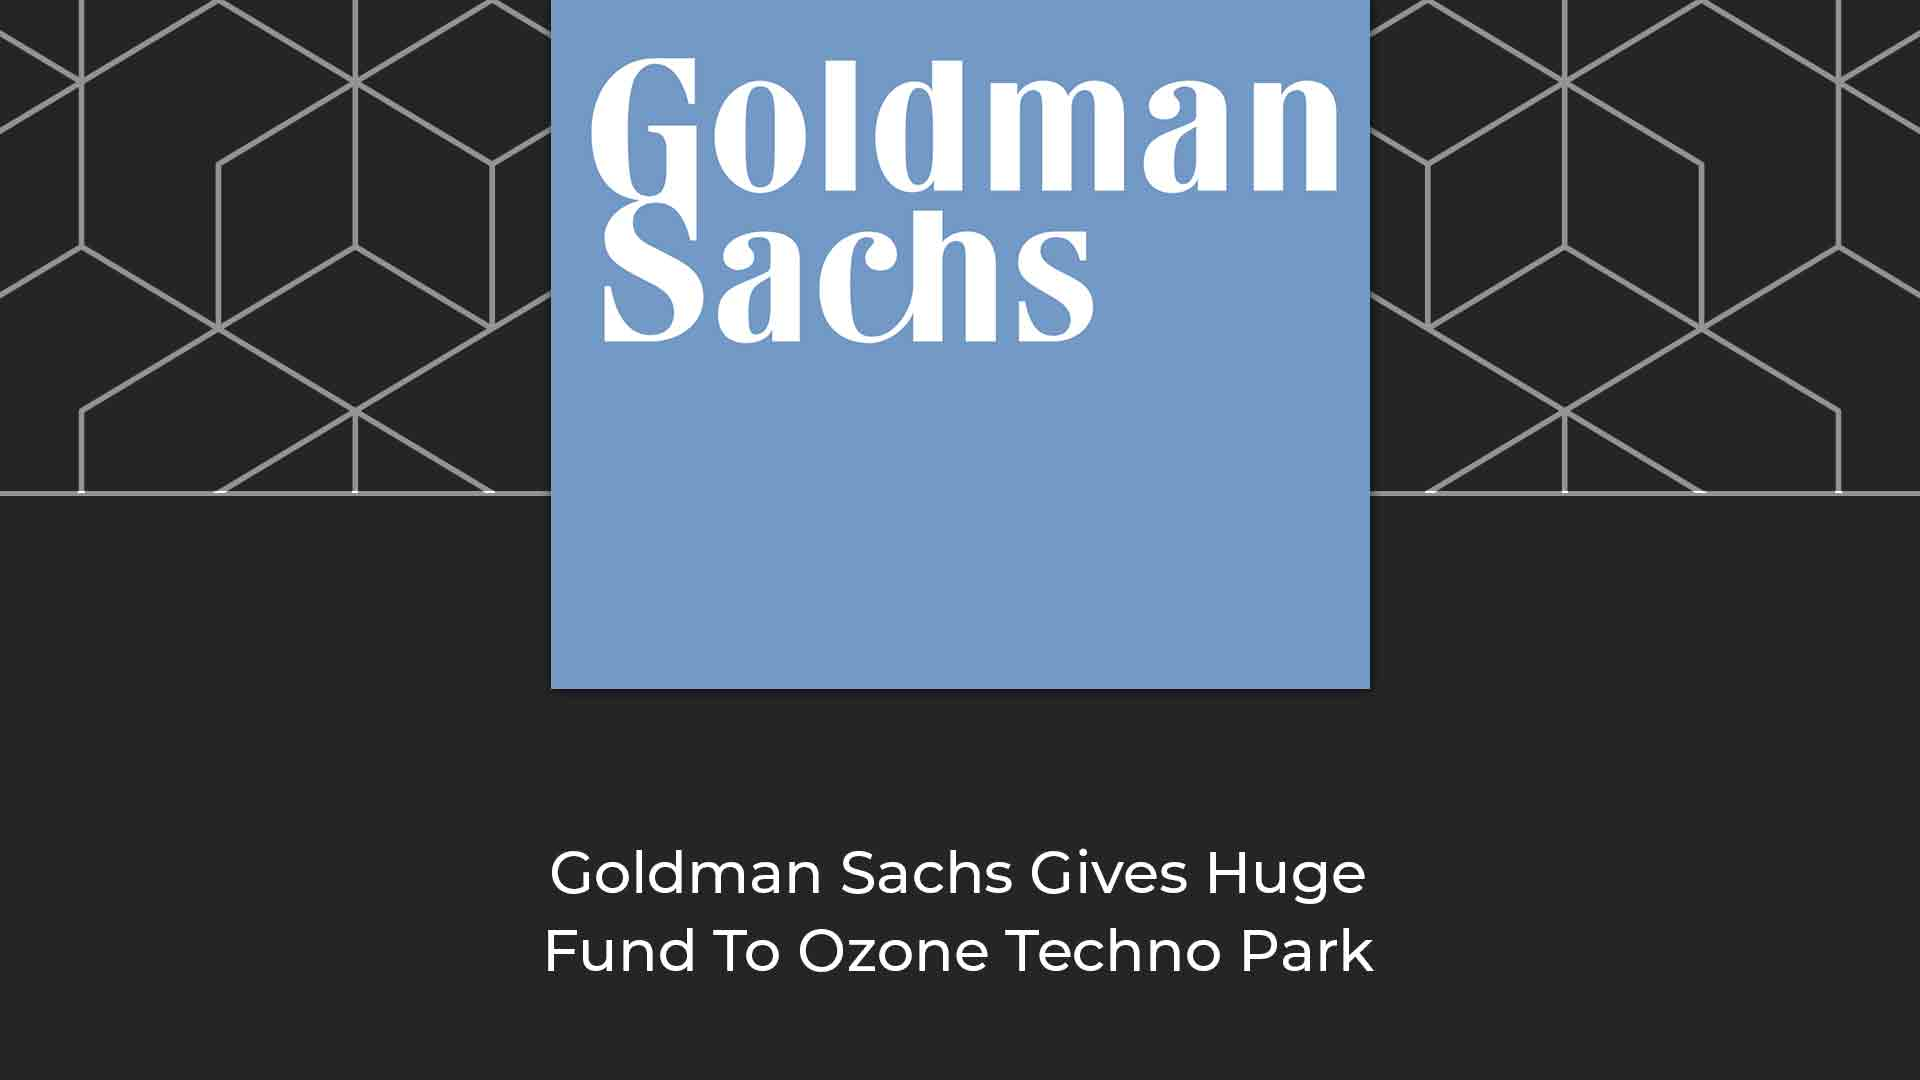 Goldman-Sachs-Gives-Huge-Fund-To-Ozone-Techno-Park